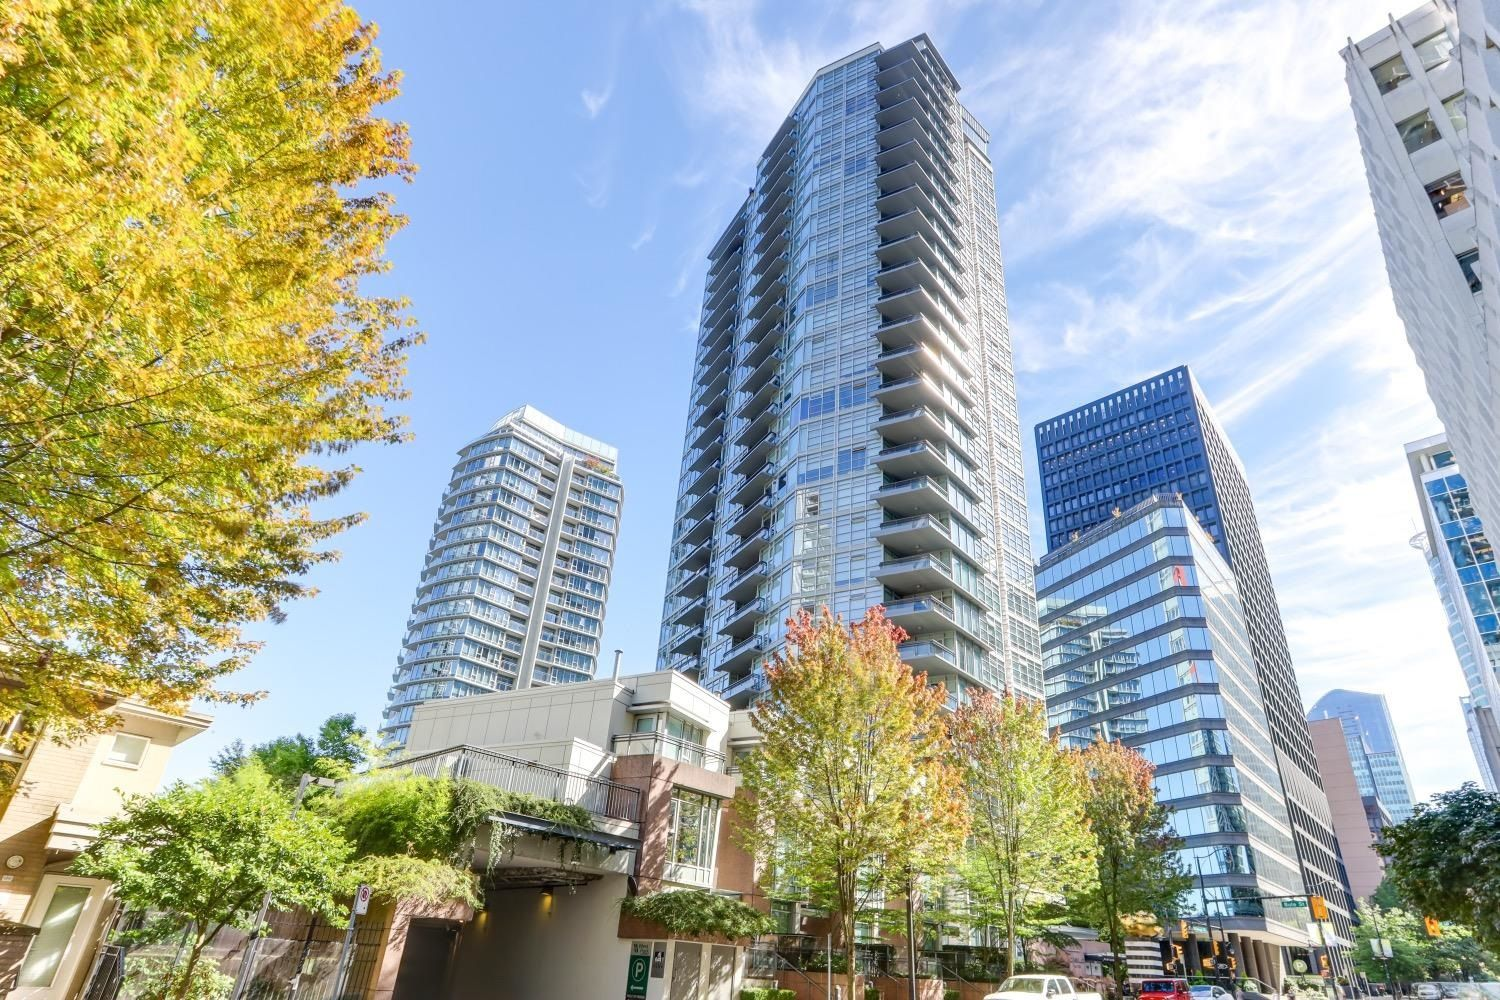 """Main Photo: 1505 1205 W HASTINGS Street in Vancouver: Coal Harbour Condo for sale in """"BCS2555"""" (Vancouver West)  : MLS®# R2617335"""